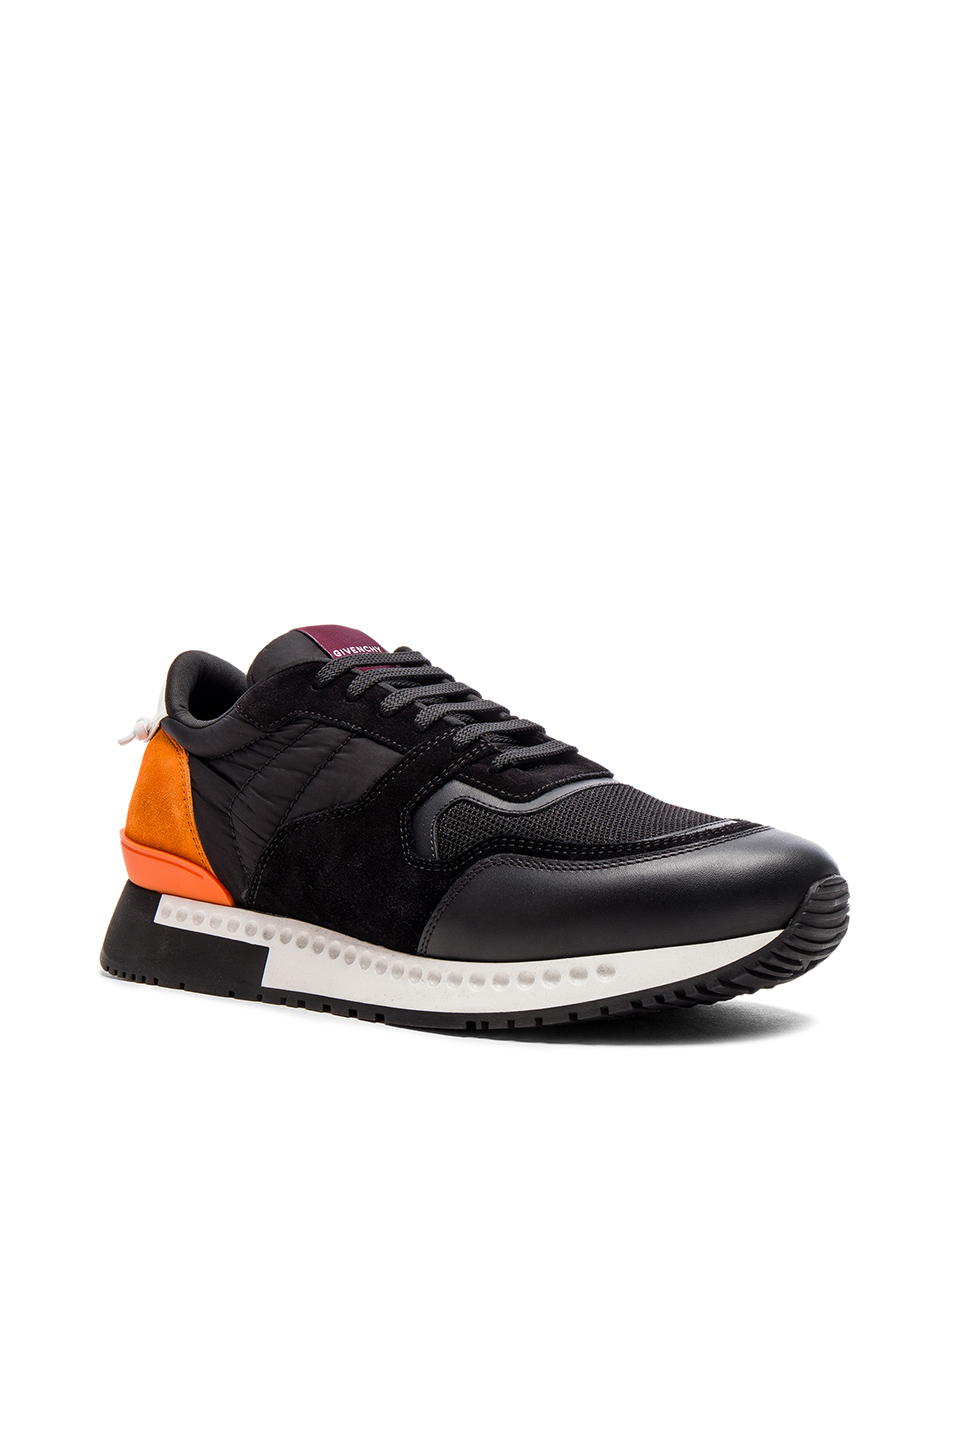 Givenchy Active Runner Sneakers in Black,Orange